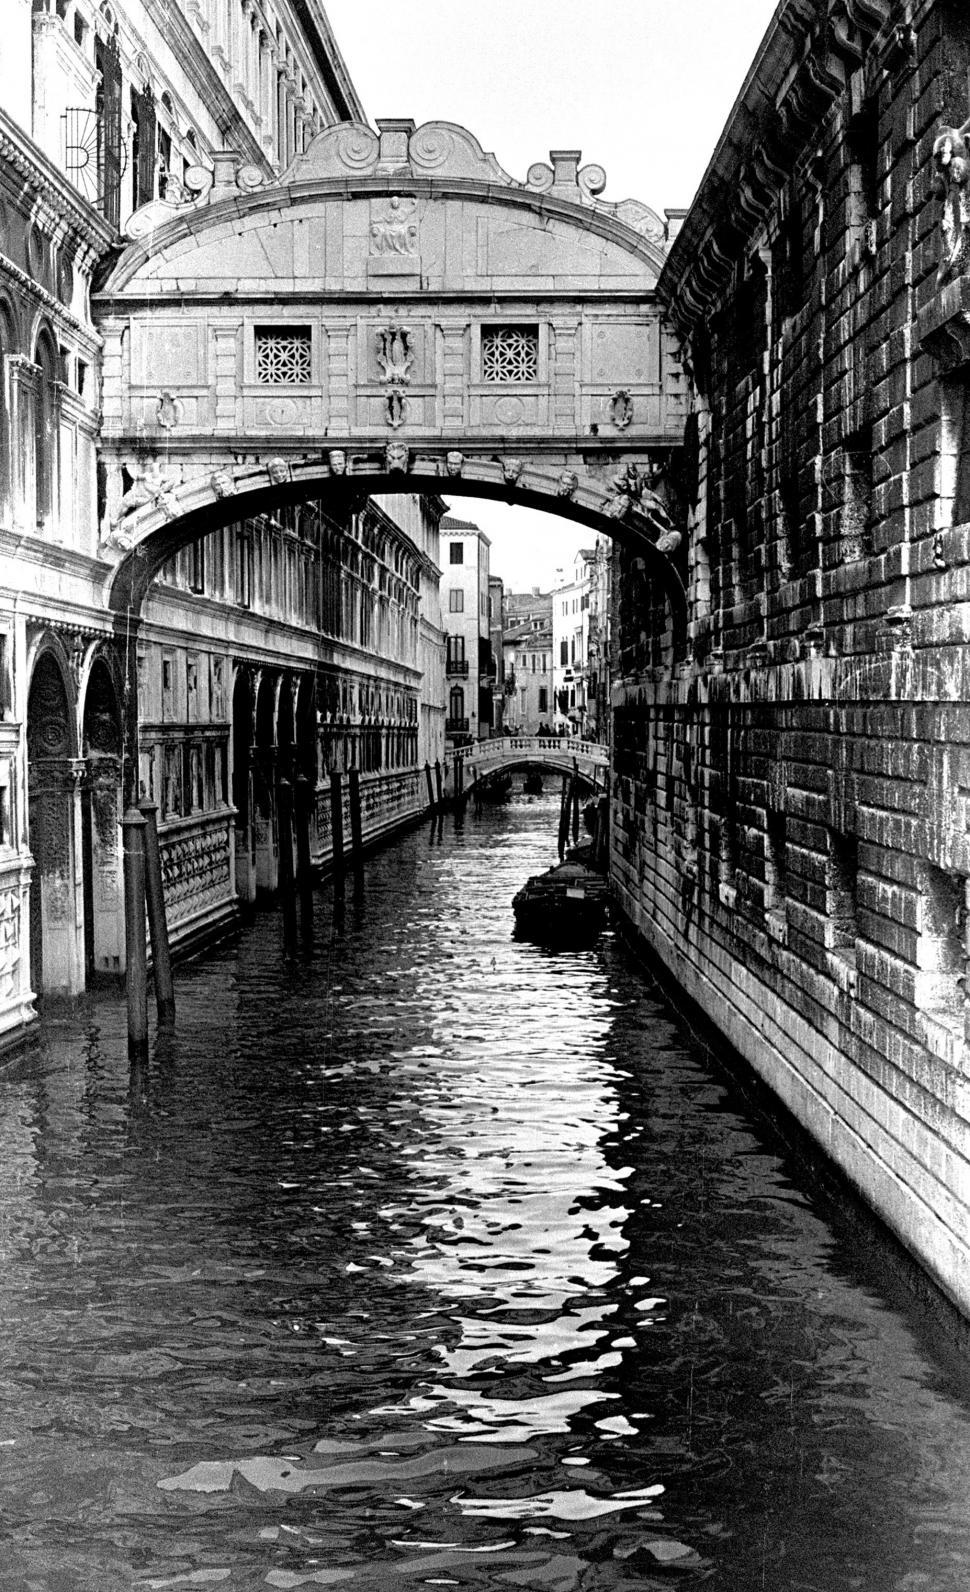 Download Free Stock Photo of Scenes from Venice, Italy